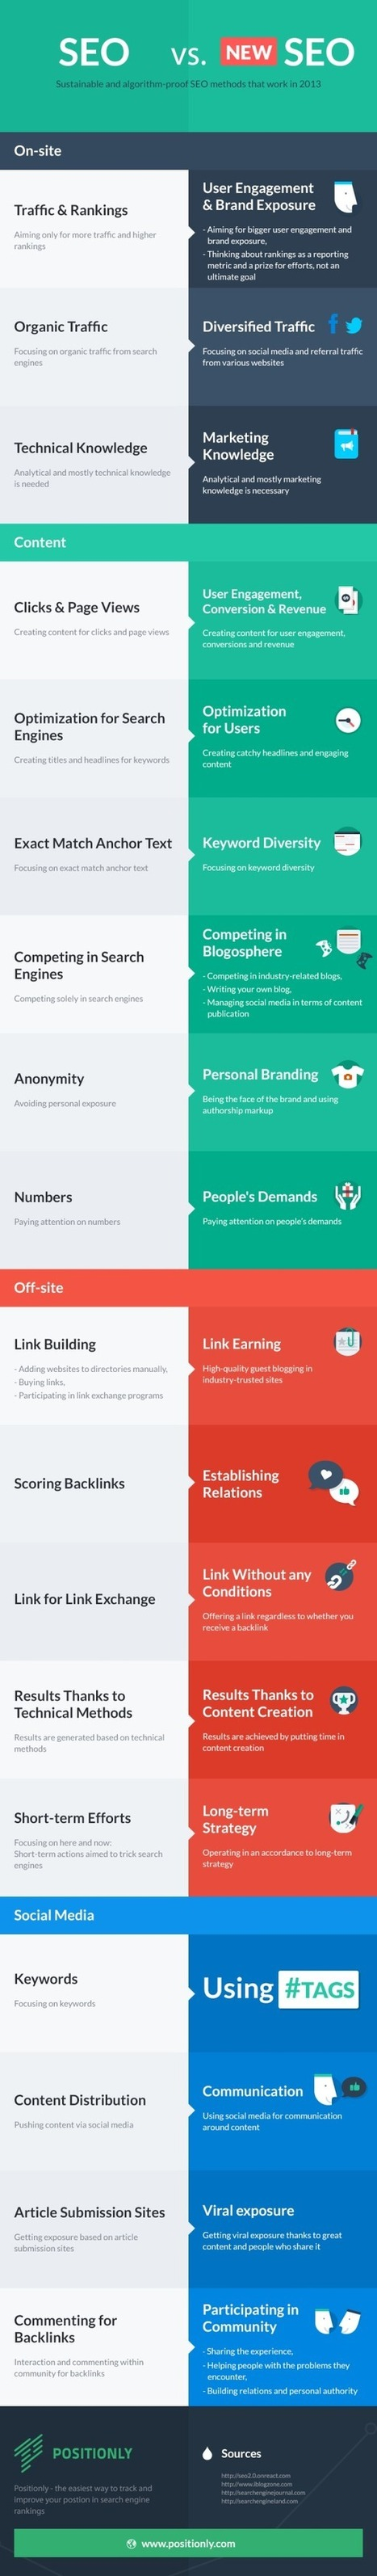 The New Rules of Search Engine Optimization (Infographic) | DV8 Digital Marketing Tips and Insight | Scoop.it